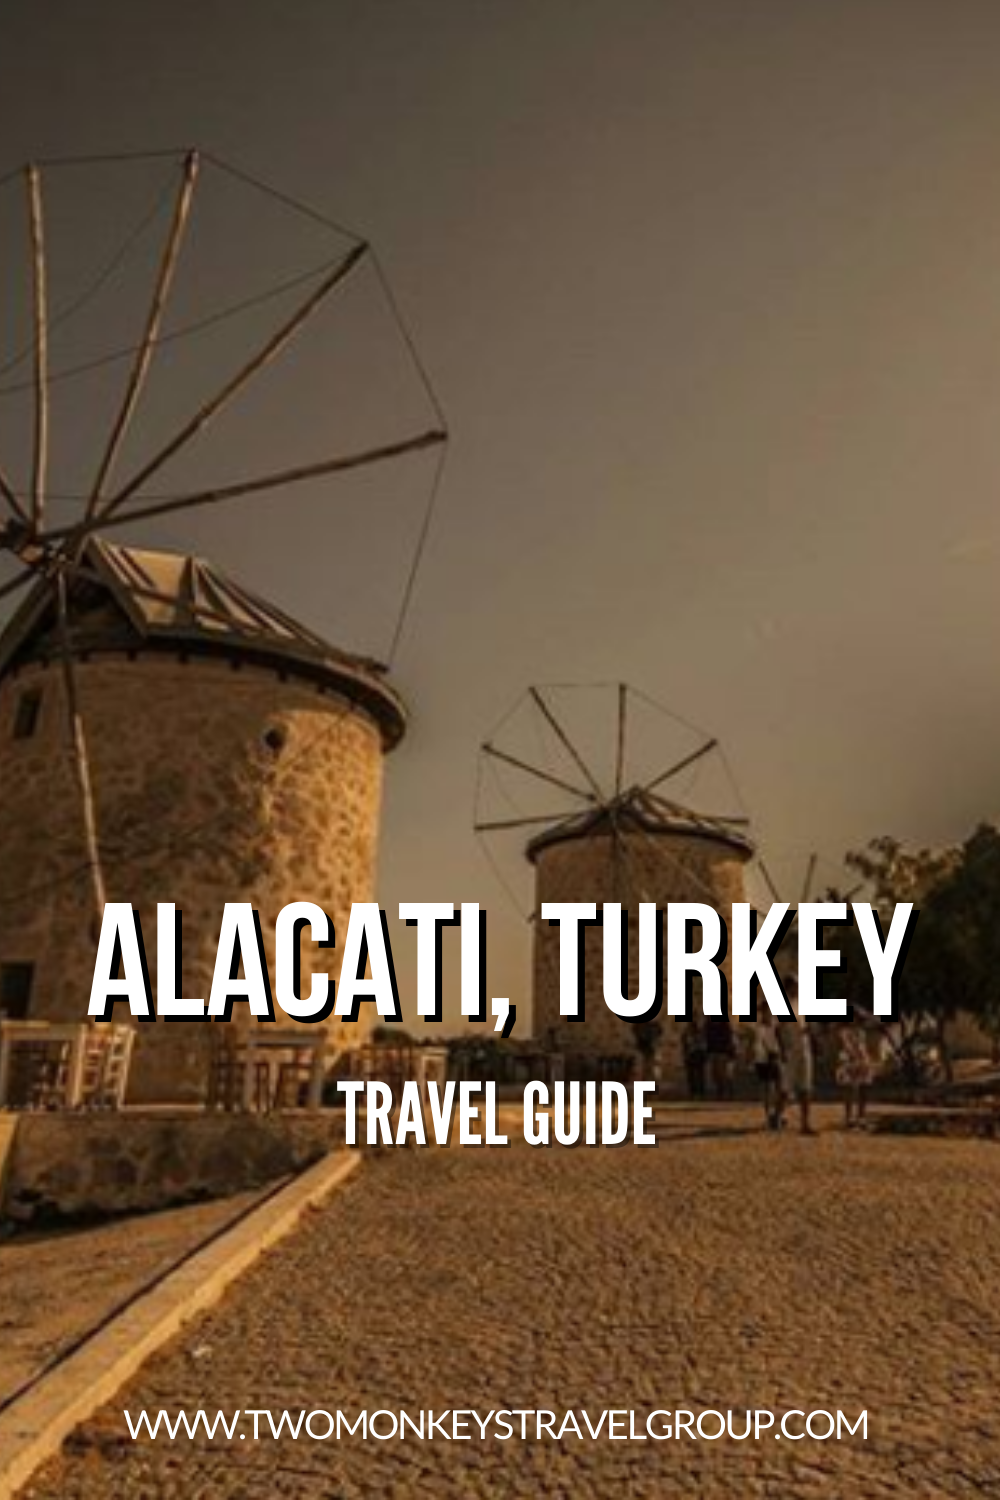 Travel Guide to Alacati, Turkey [with Sample Itinerary]